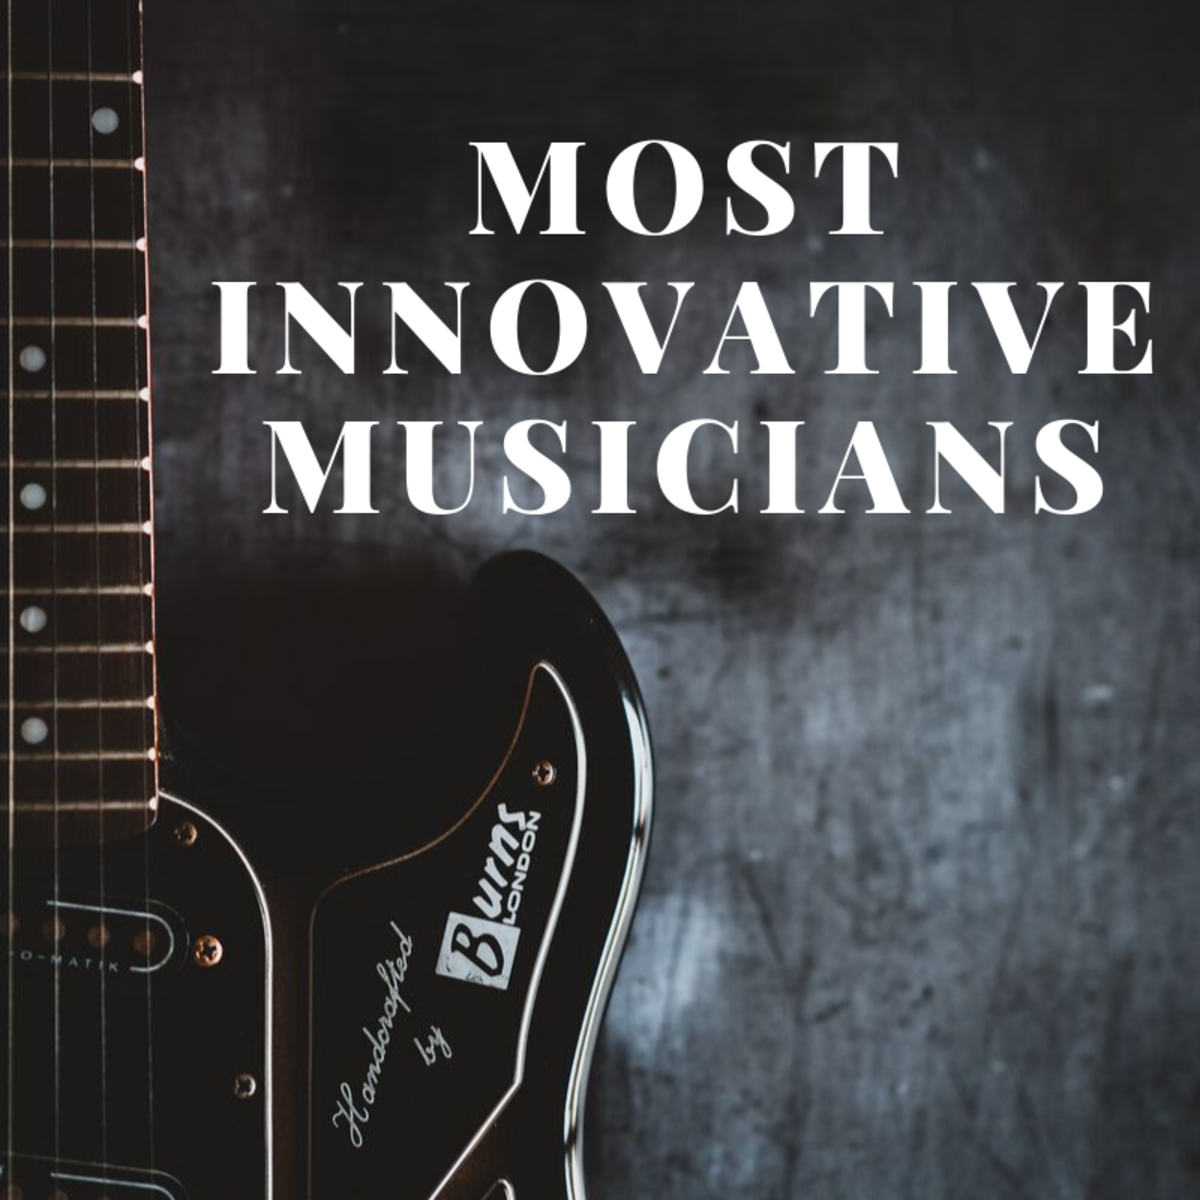 Top 10 Most Innovative Musicians